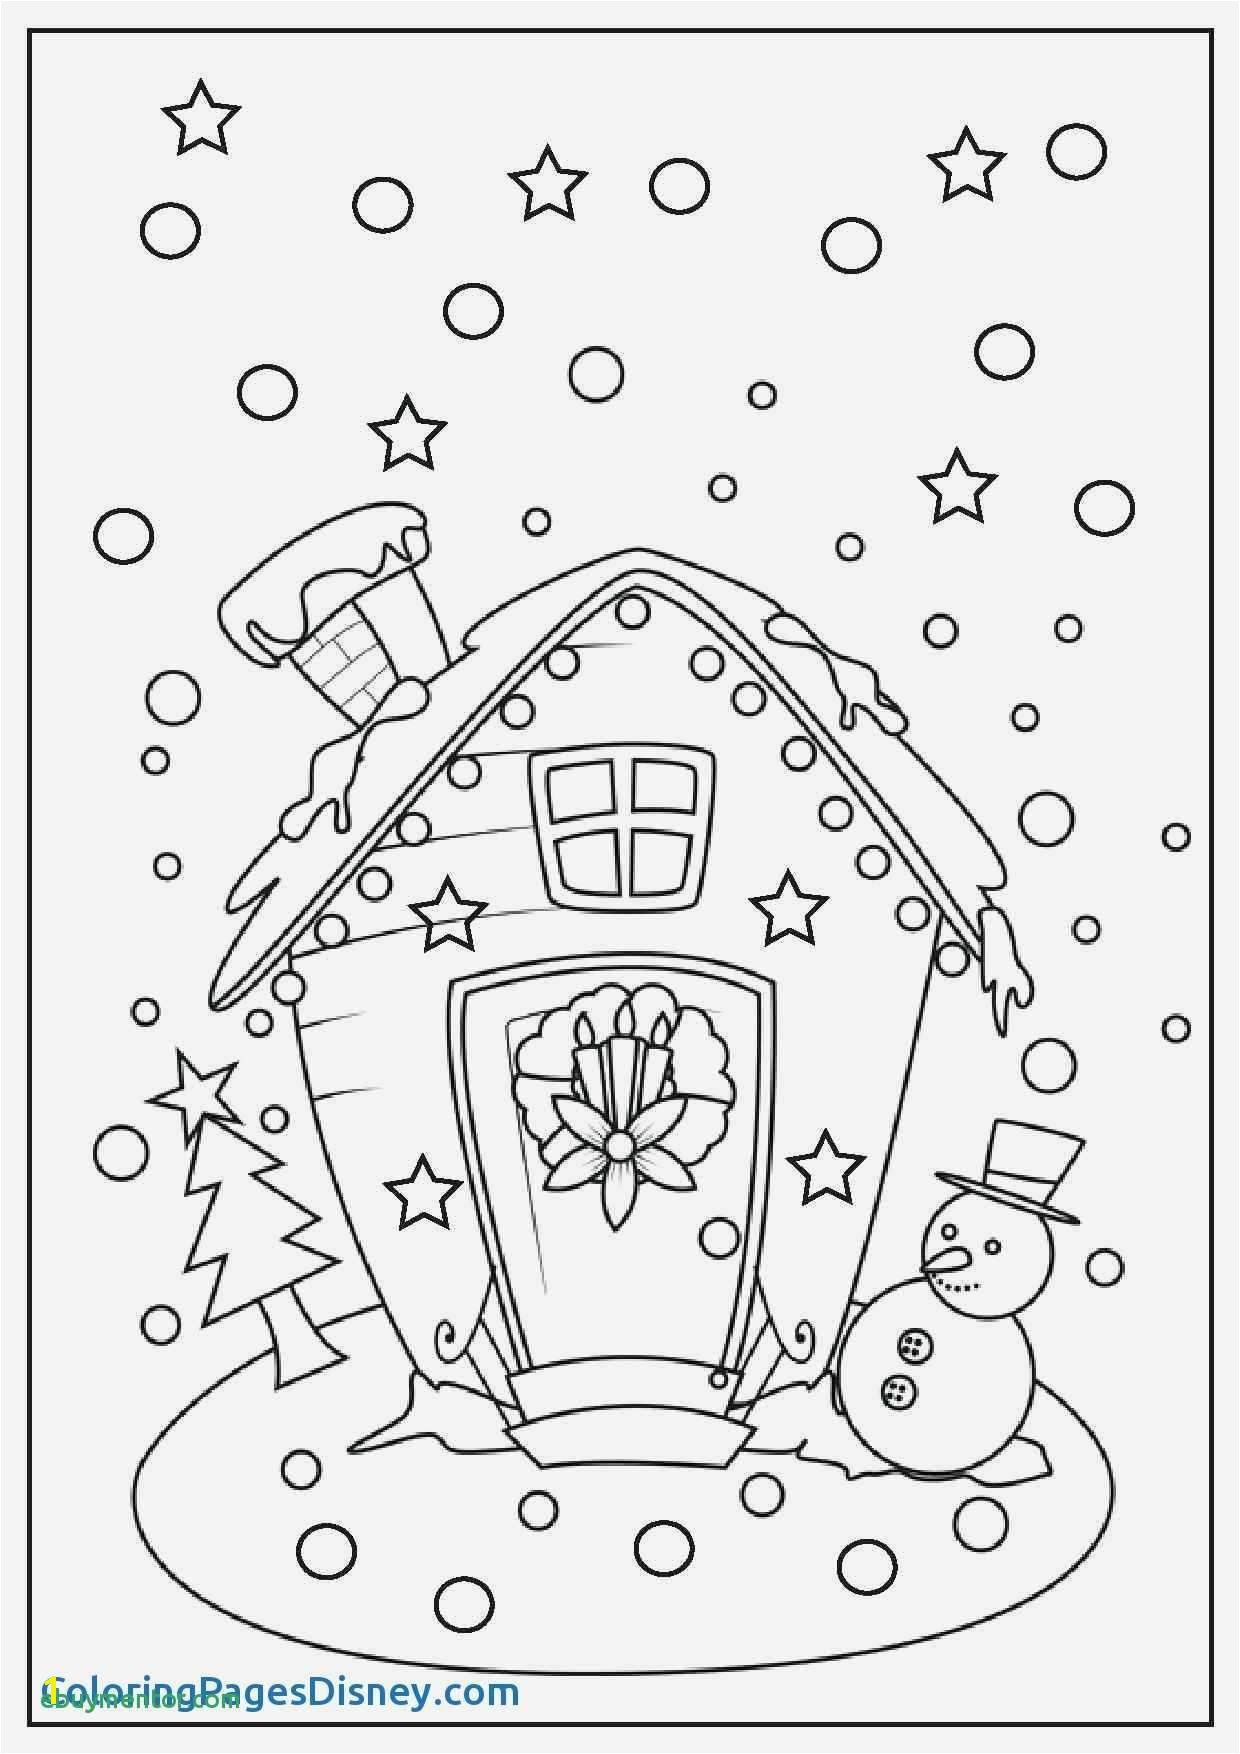 Coloring Pages Christmas Christmas Coloring Pages for Adults to Print Cool Coloring